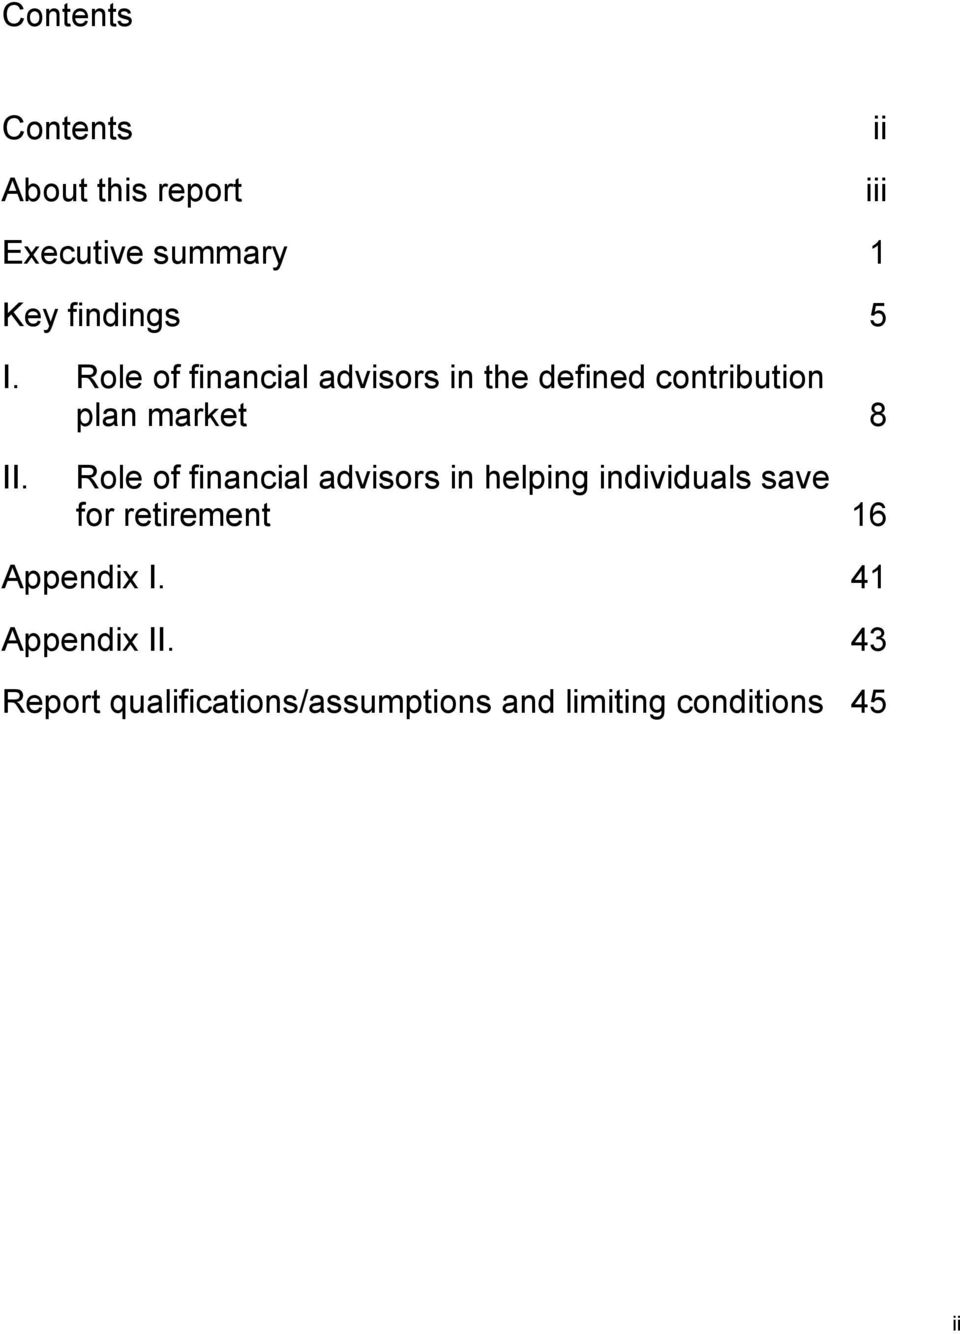 Role of financial advisors in helping individuals save for retirement 16